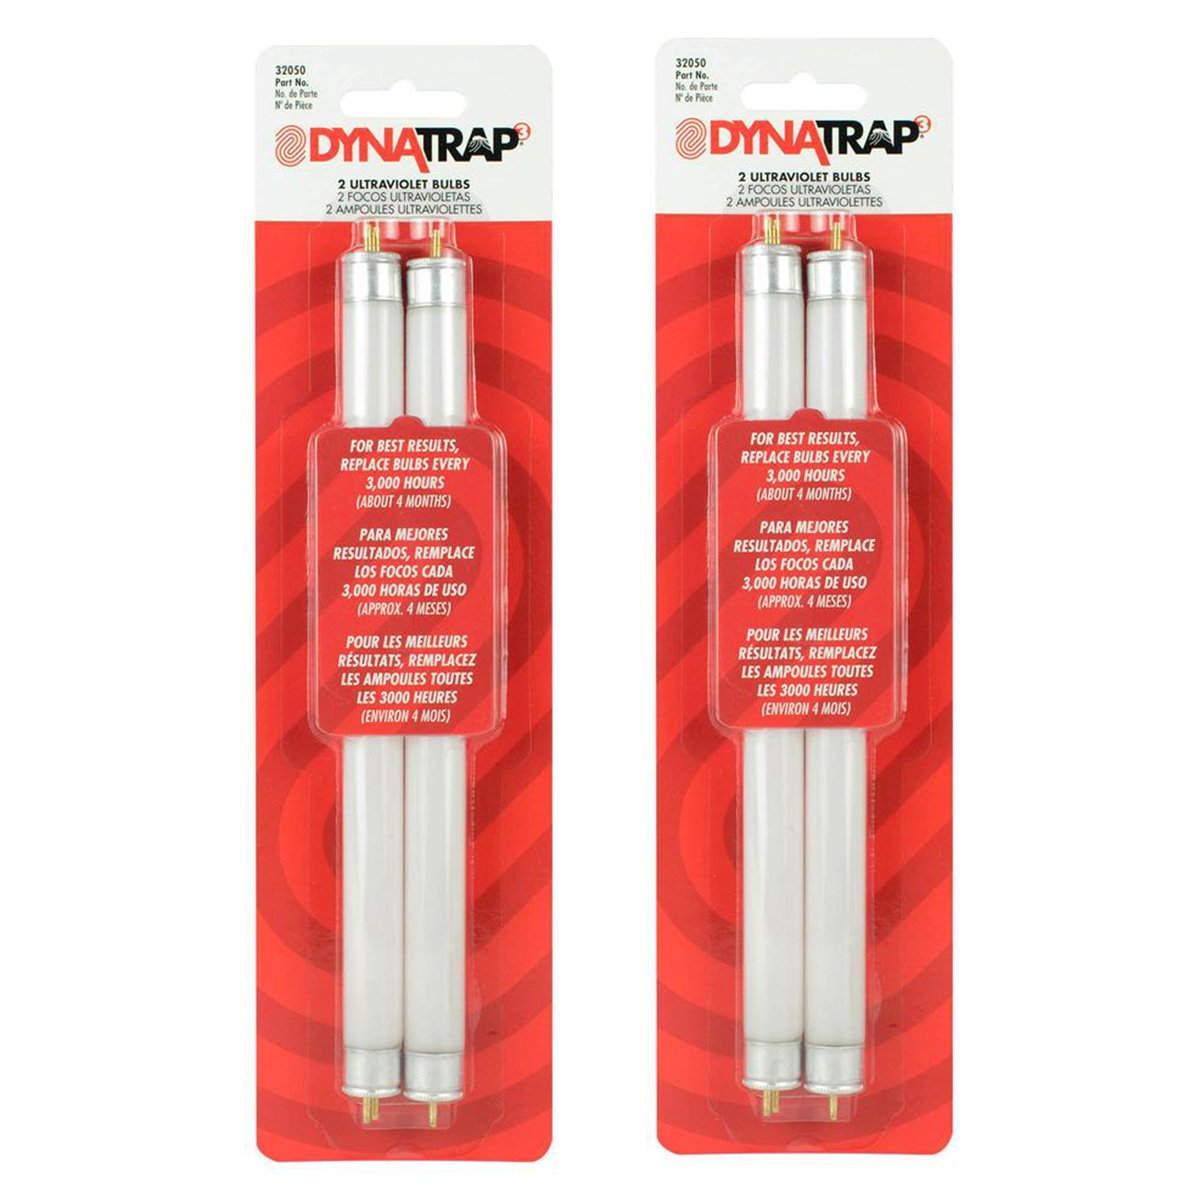 DynaTrap 32050 Replacement UV Light Bulbs for DT2000XL Insect Trap (Pack of 2, Total of 4 Bulbs)